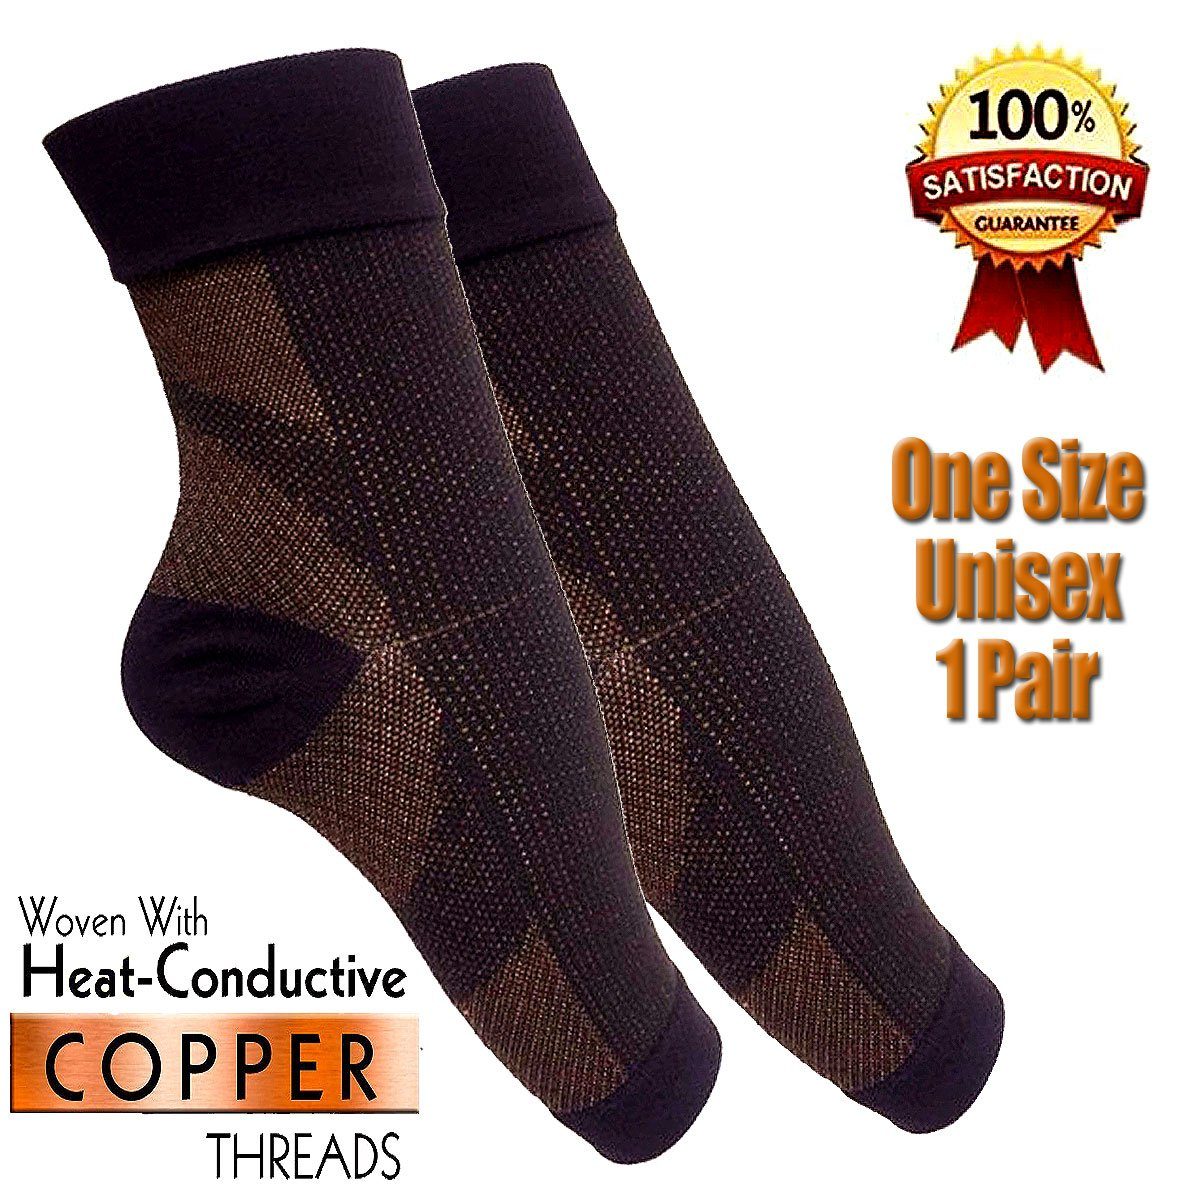 COPPER Compression Sleeve - Anti-Fatigue - Medical Compression Ankle Socks